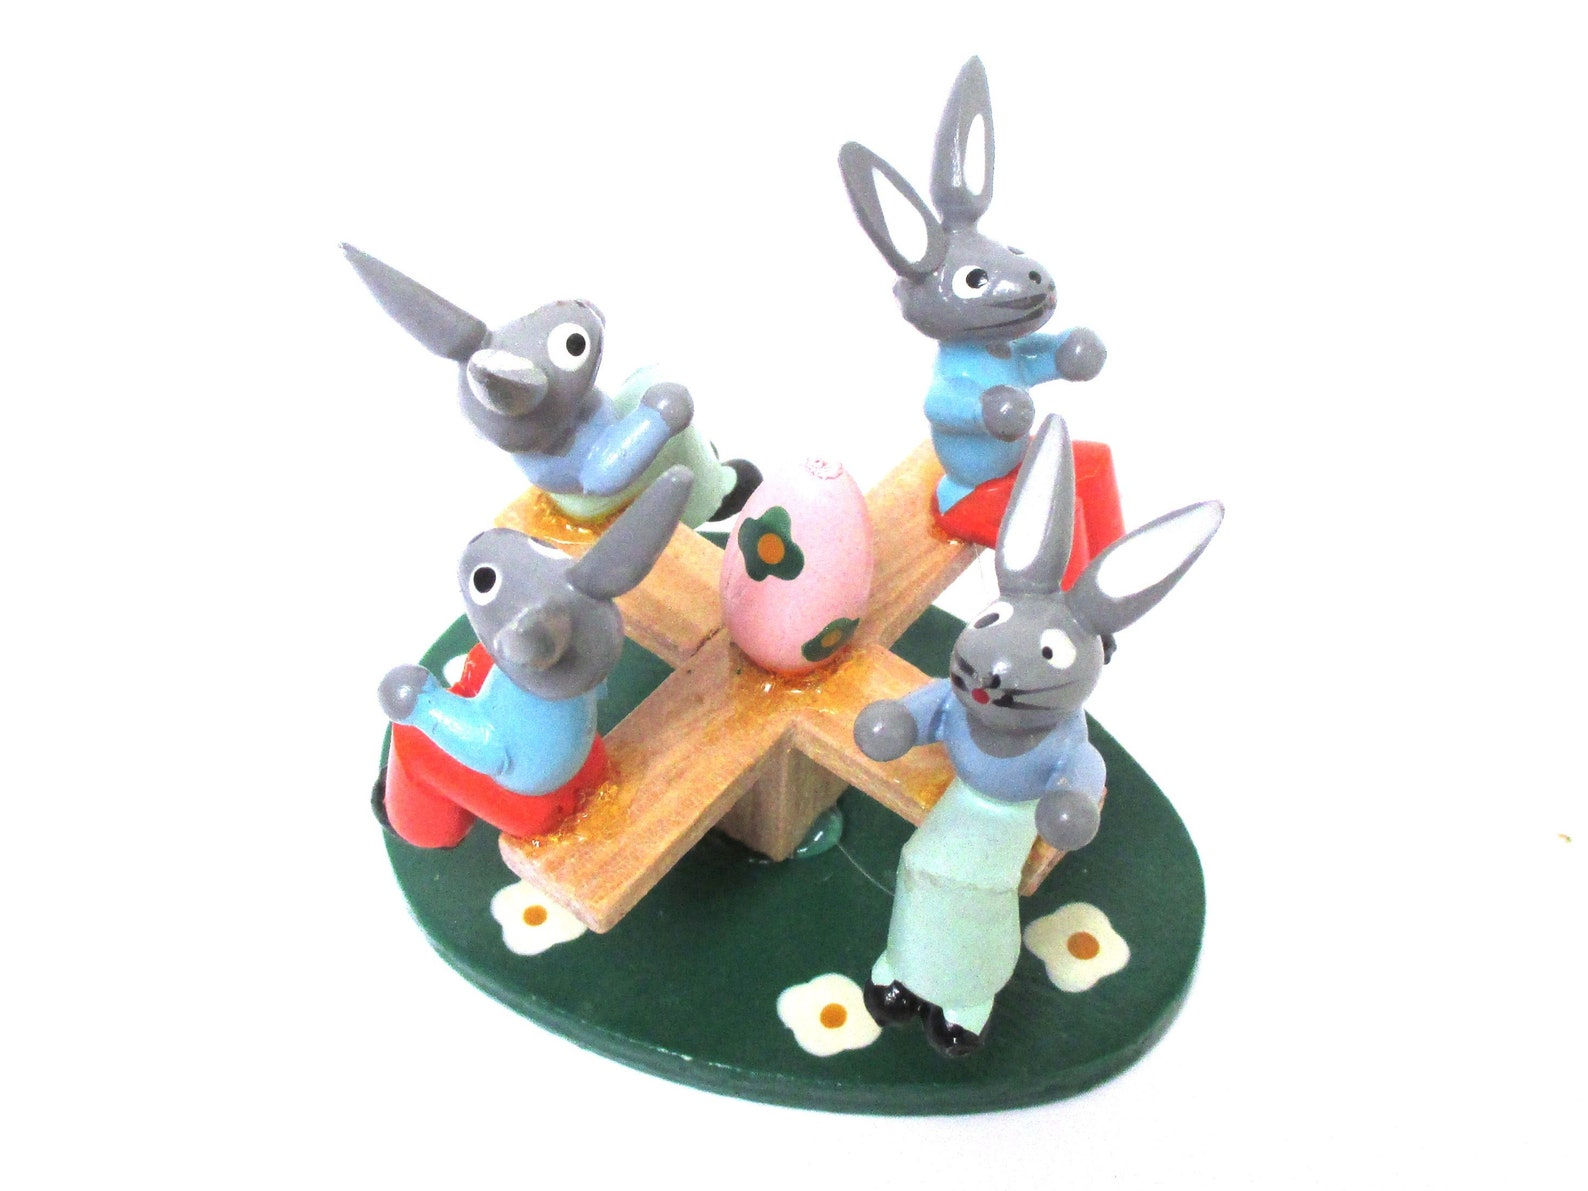 Easter Figurine Merry-Go-Round with Bunny Rabbits Vintage Germany Wood Playground Erzgebirge Style Spring Decor Handmade Rustic Farmhouse